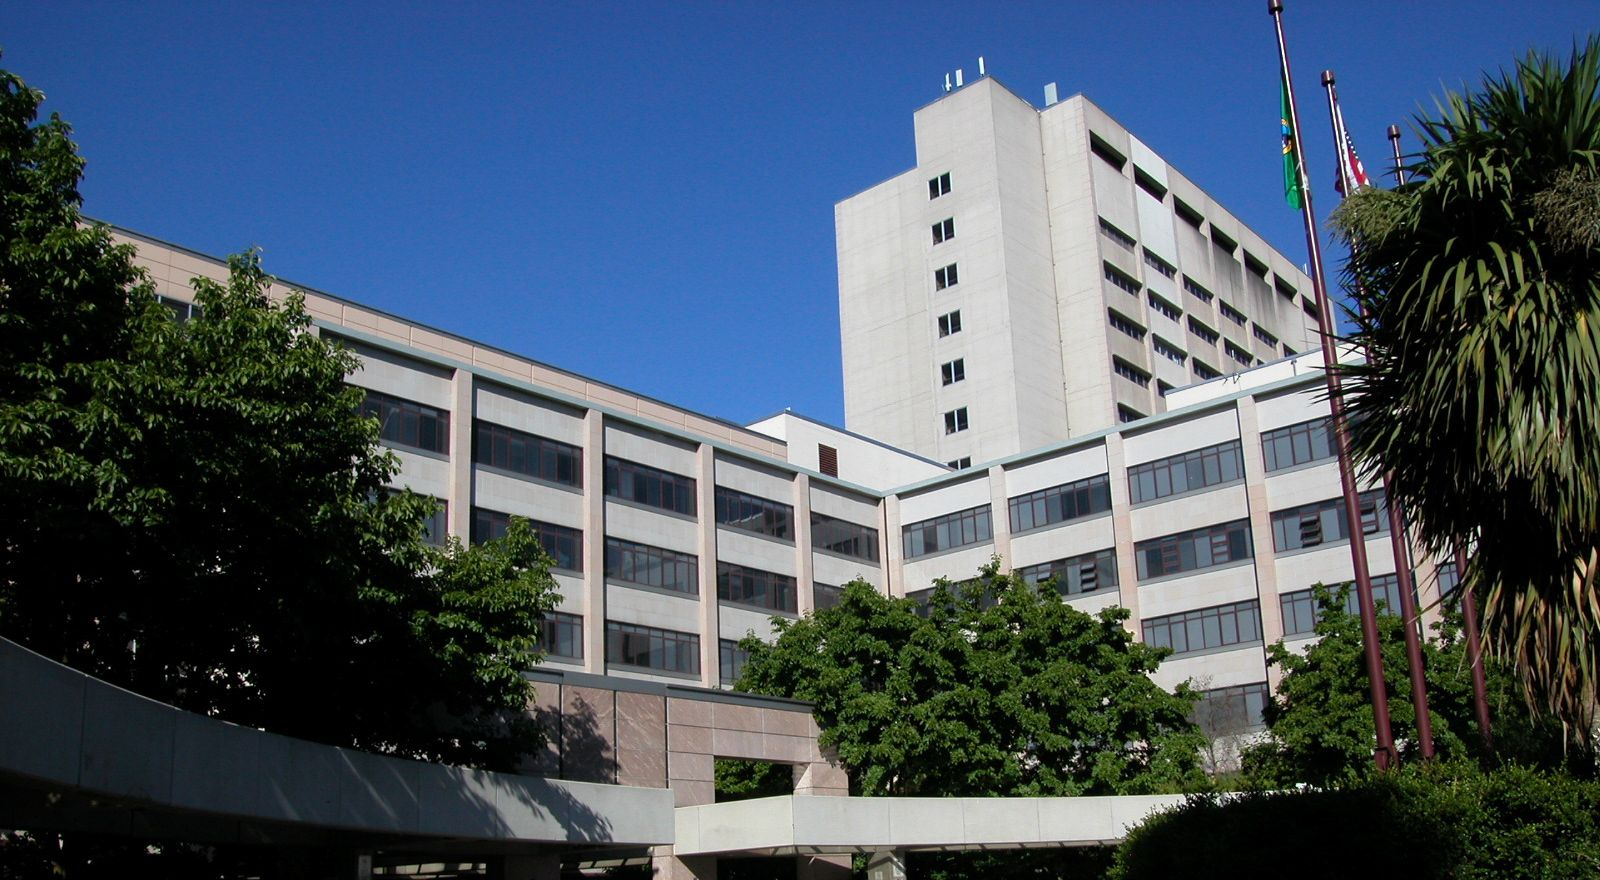 UW medical center